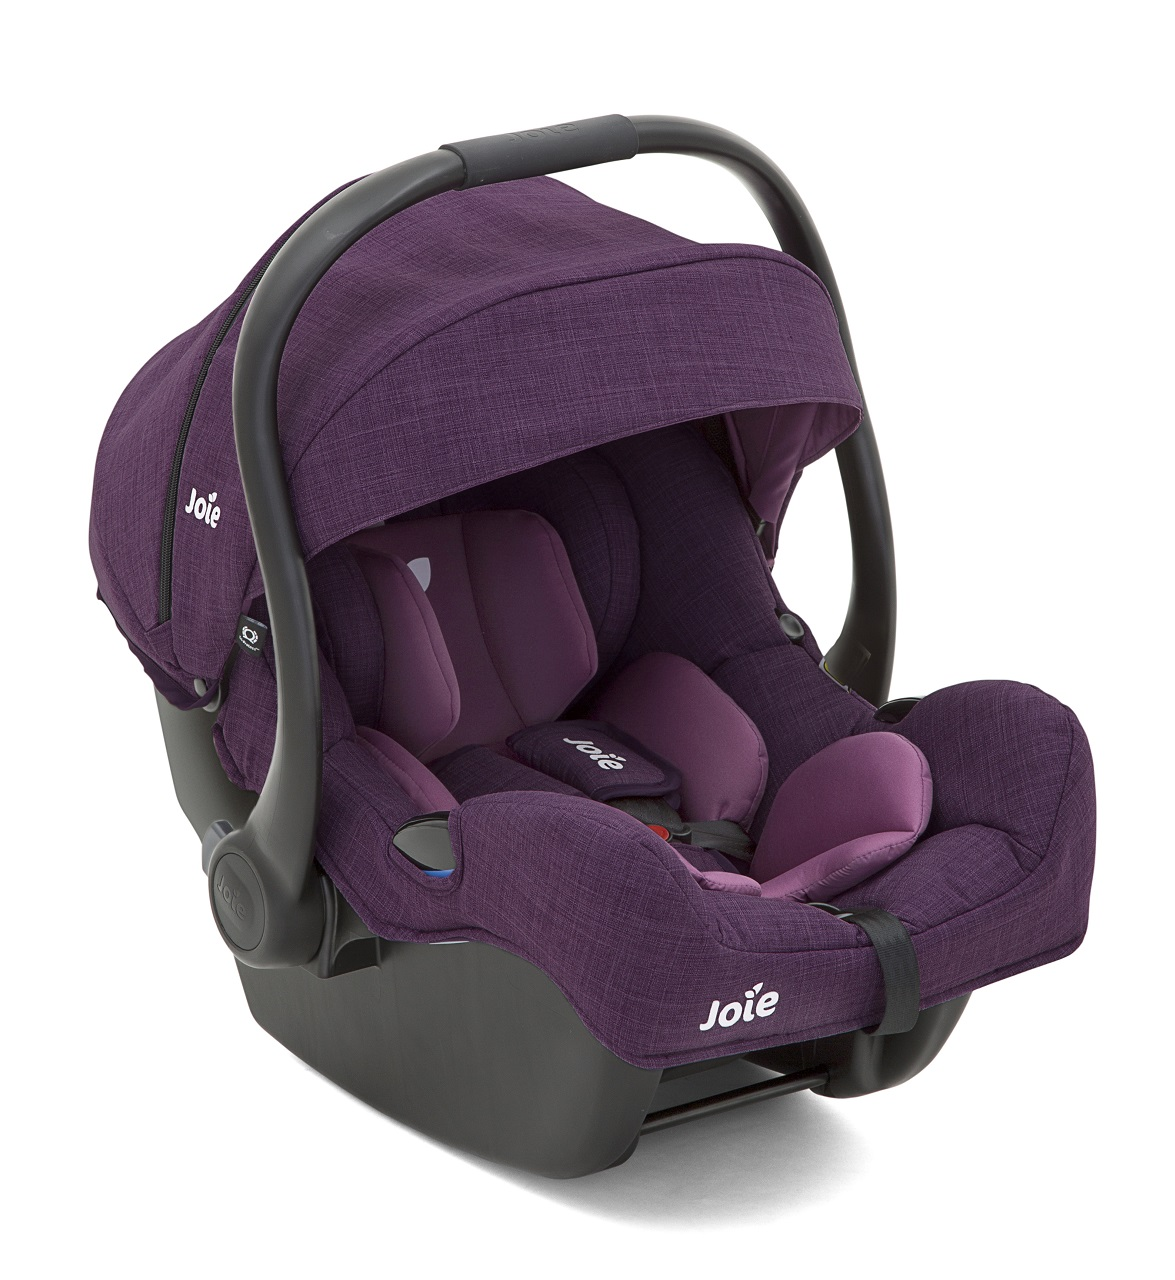 Joie Infant Car Seat I Gemm 2017 Lilac Buy At Kidsroom Car Seats